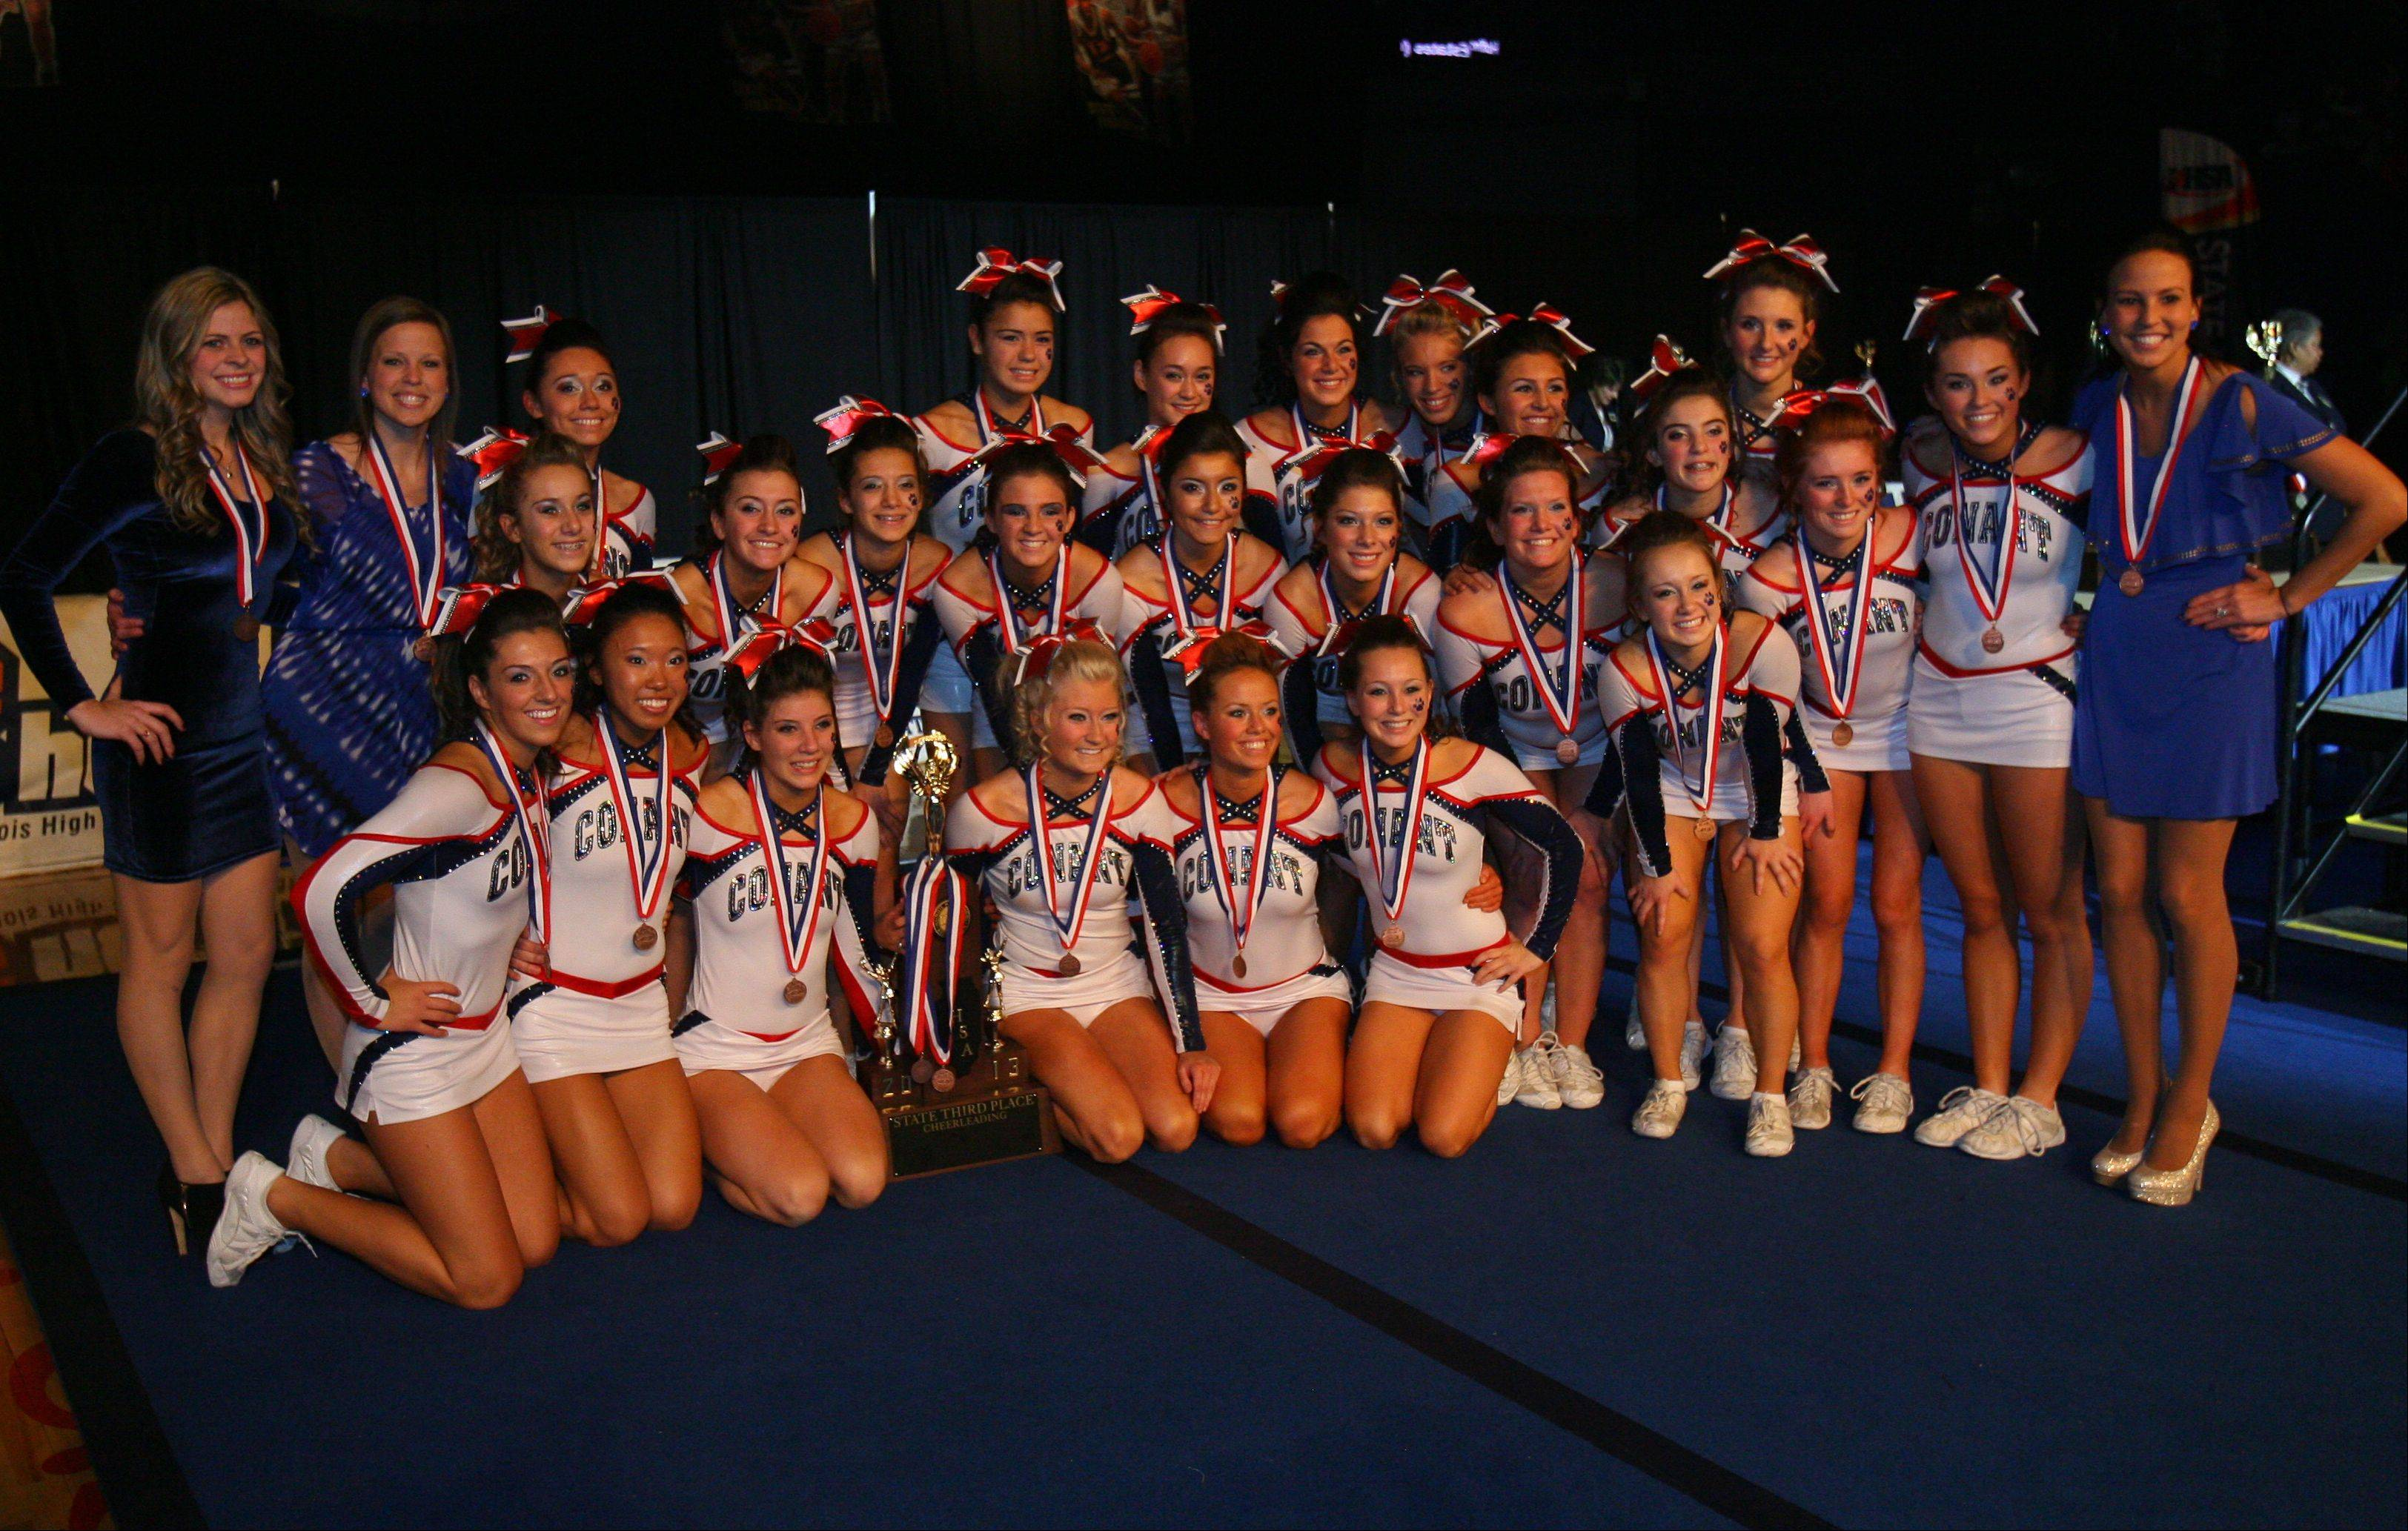 Girls from Conant High School celebrate after winning 3rd place in the IHSA Competitive Cheerleading finals on Saturday, Feb. 2 at the U.S. Cellular Coliseum in Bloomington.